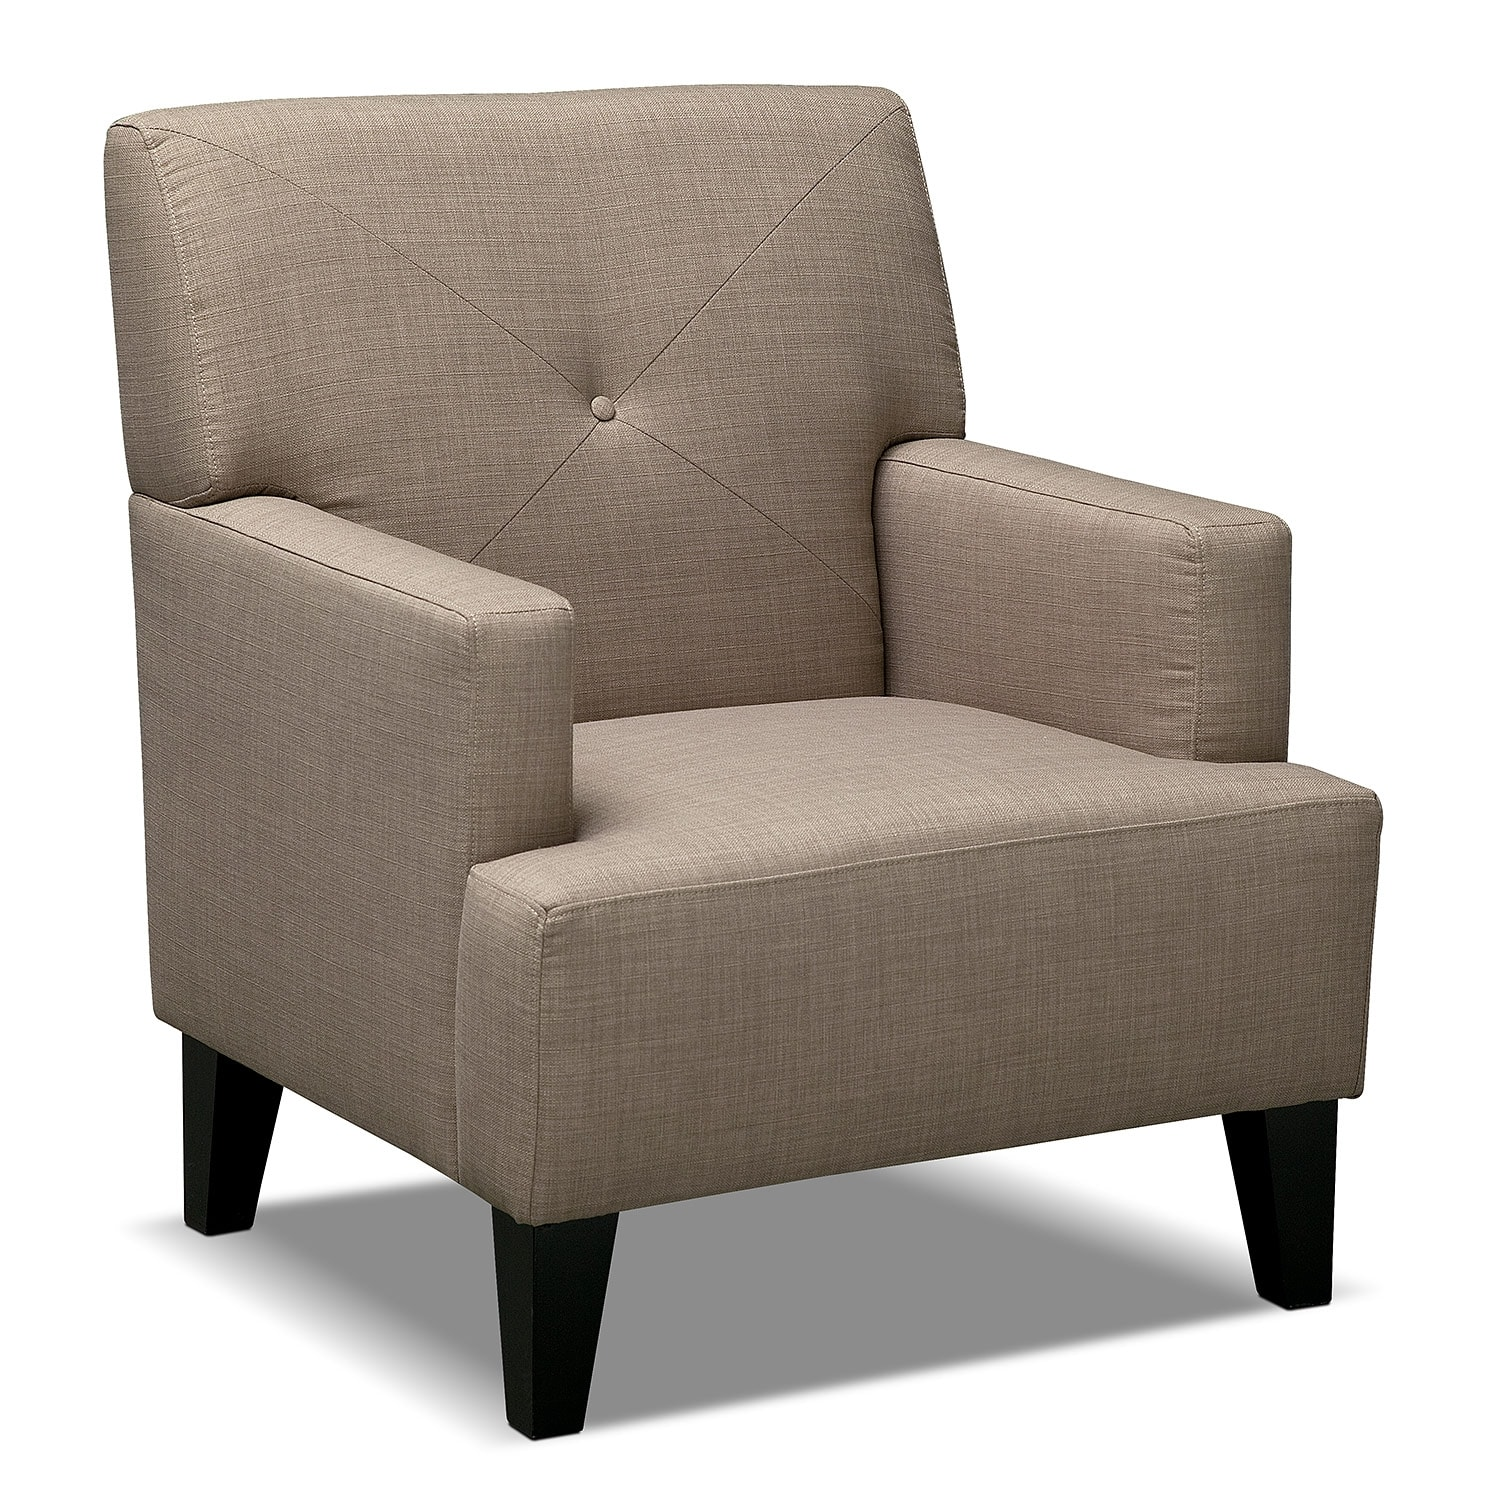 Avalon accent chair wheat value city furniture for Furniture chairs